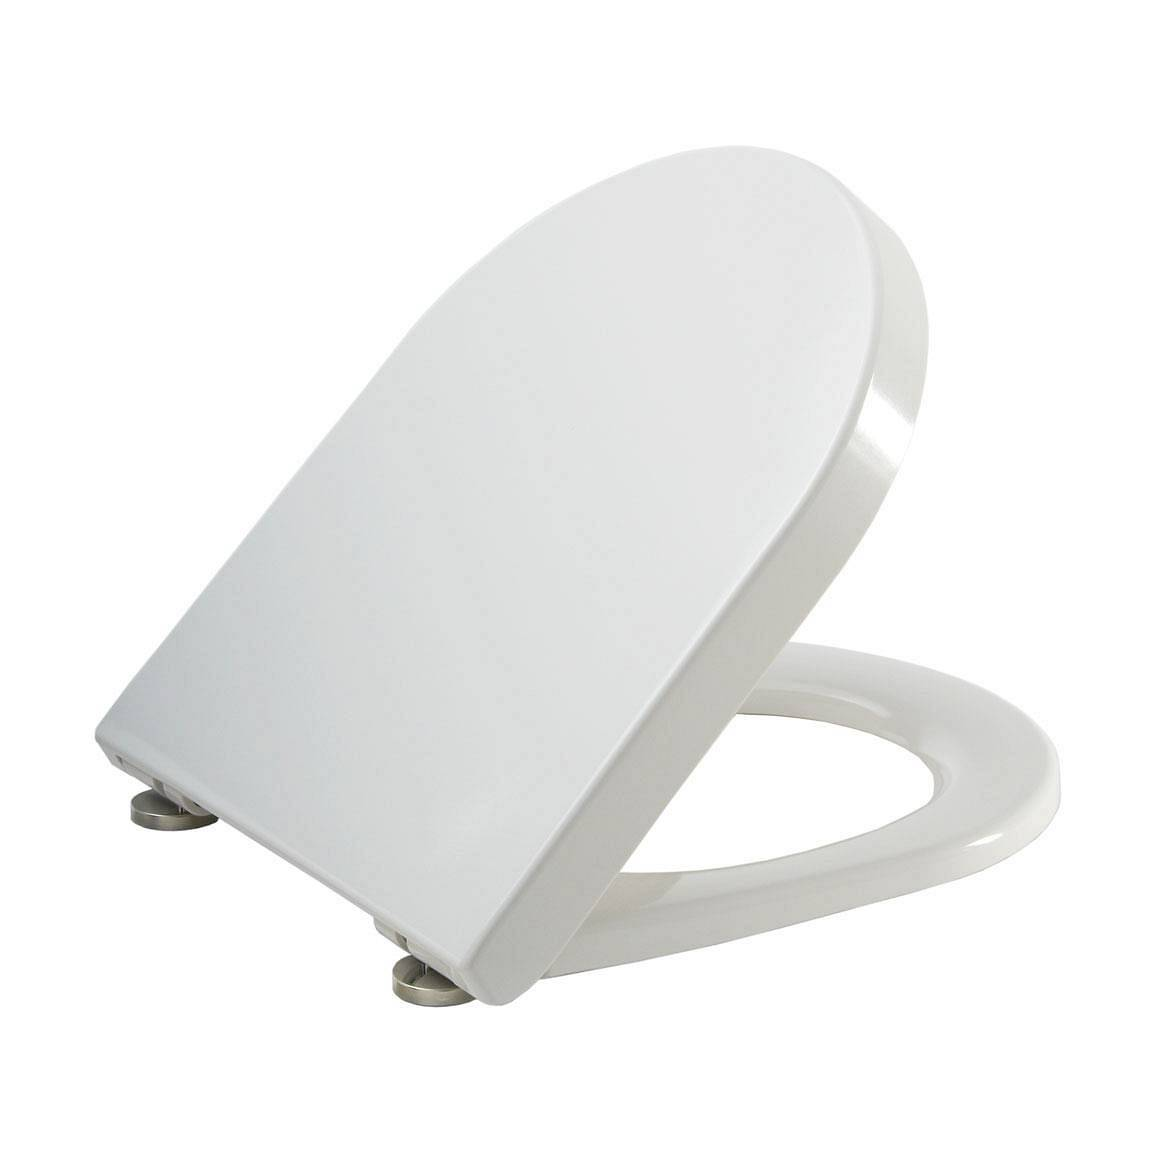 Image of Deco Toilet Seat